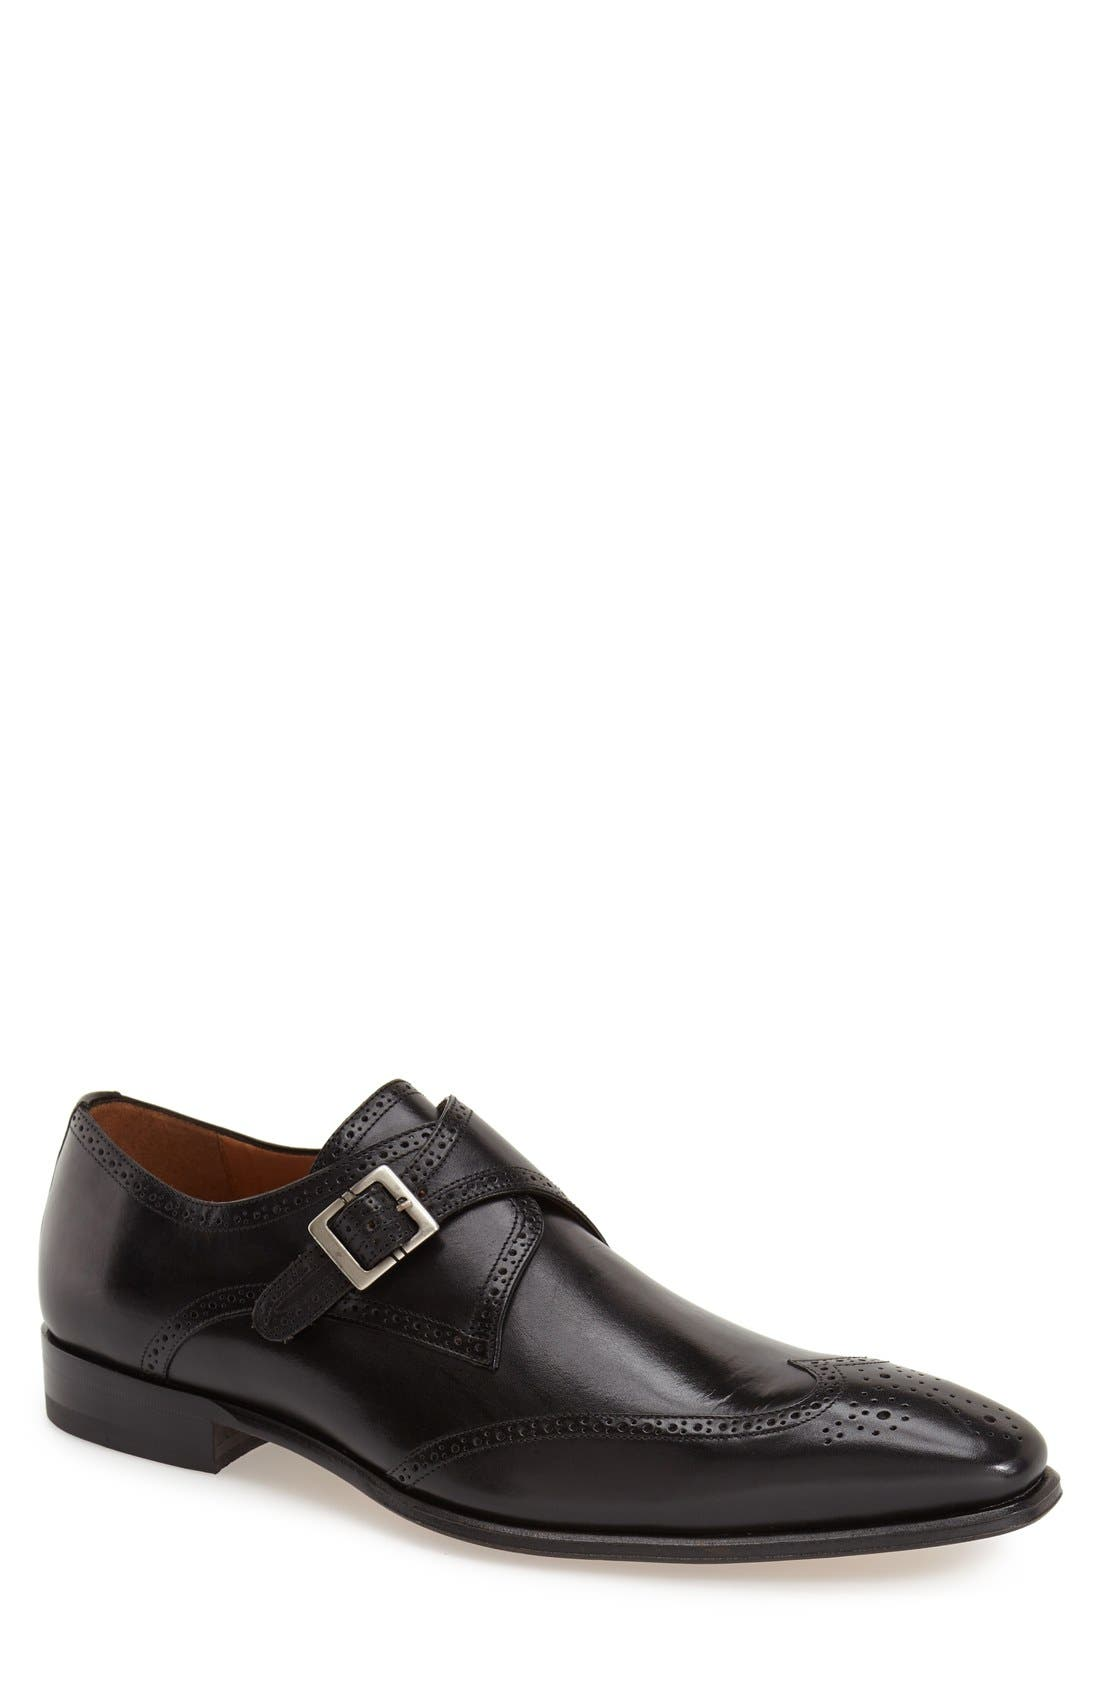 'Vitoria' Monk Strap Oxford,                             Main thumbnail 1, color,                             BLACK LEATHER